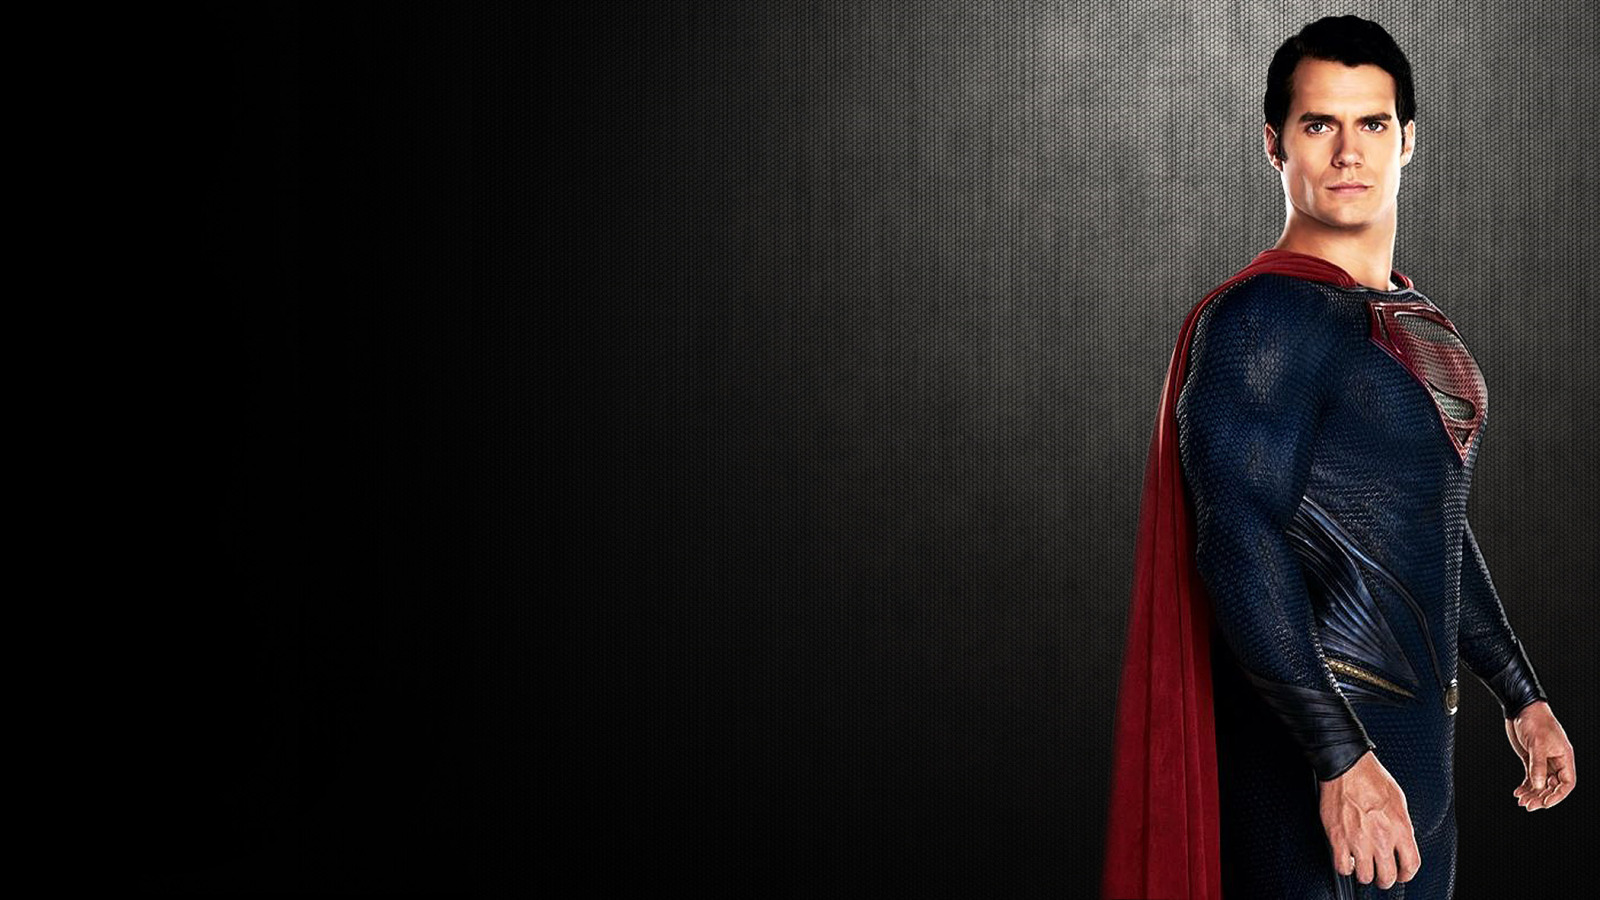 man of steel images man of steel wallpapers hd wallpaper and